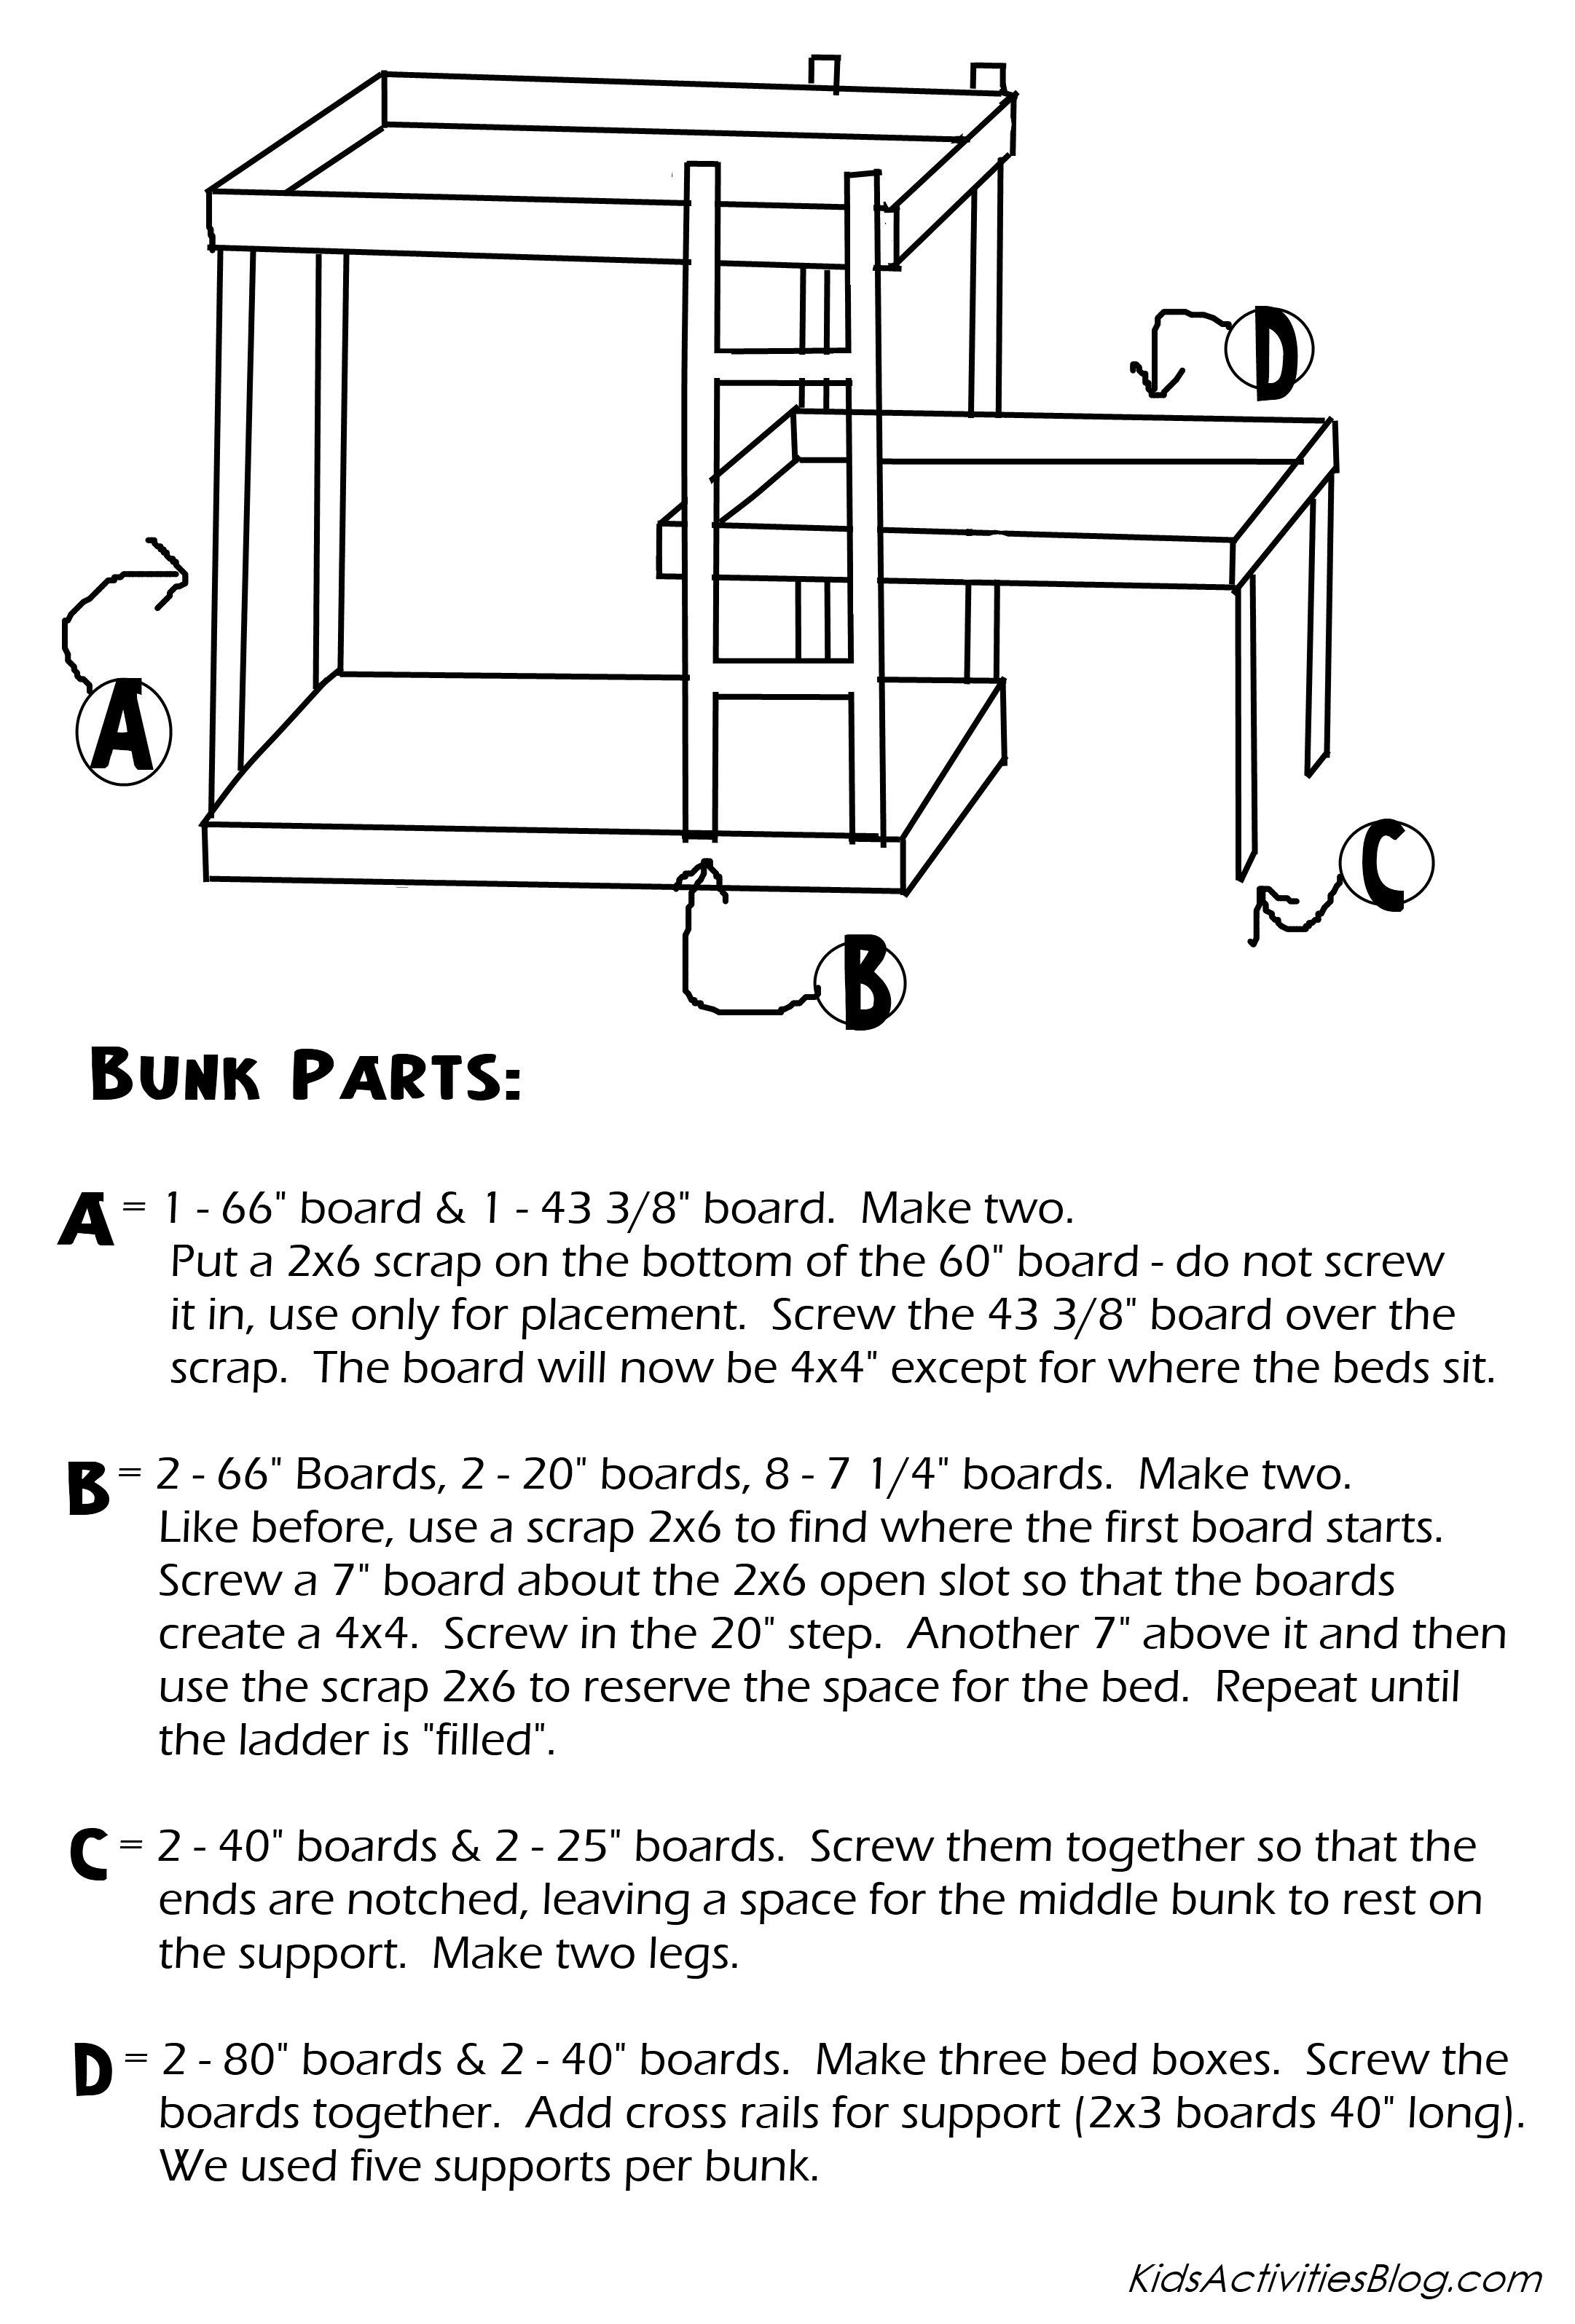 Triple Bunk Bed Plans Great To Have A Spare For Sleepovers